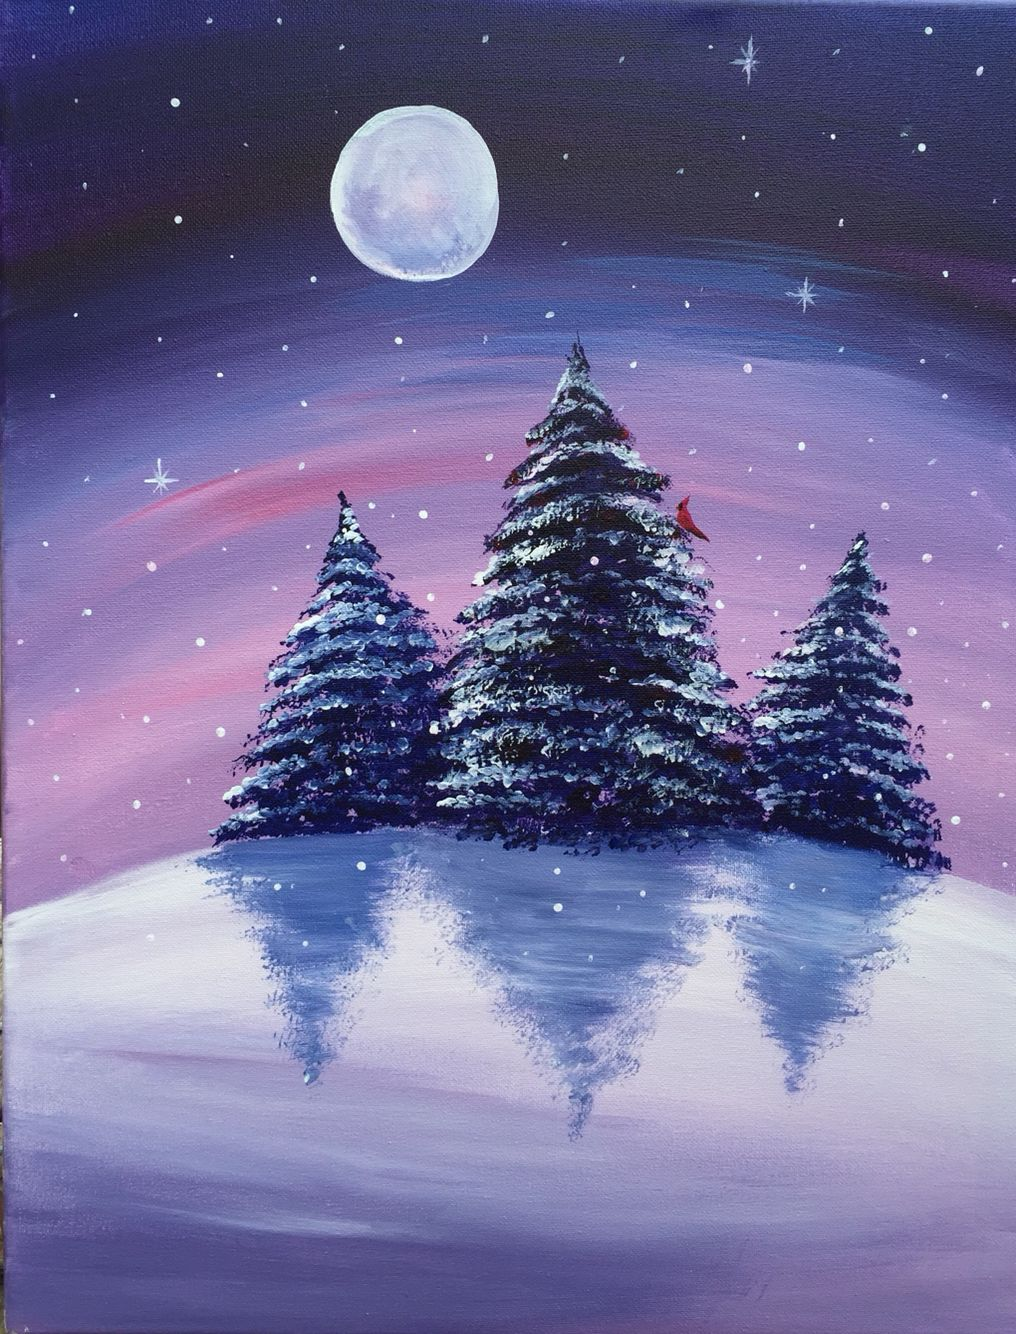 A Winter's Night   Paint Nite Paintings- Paid   Pinterest ...